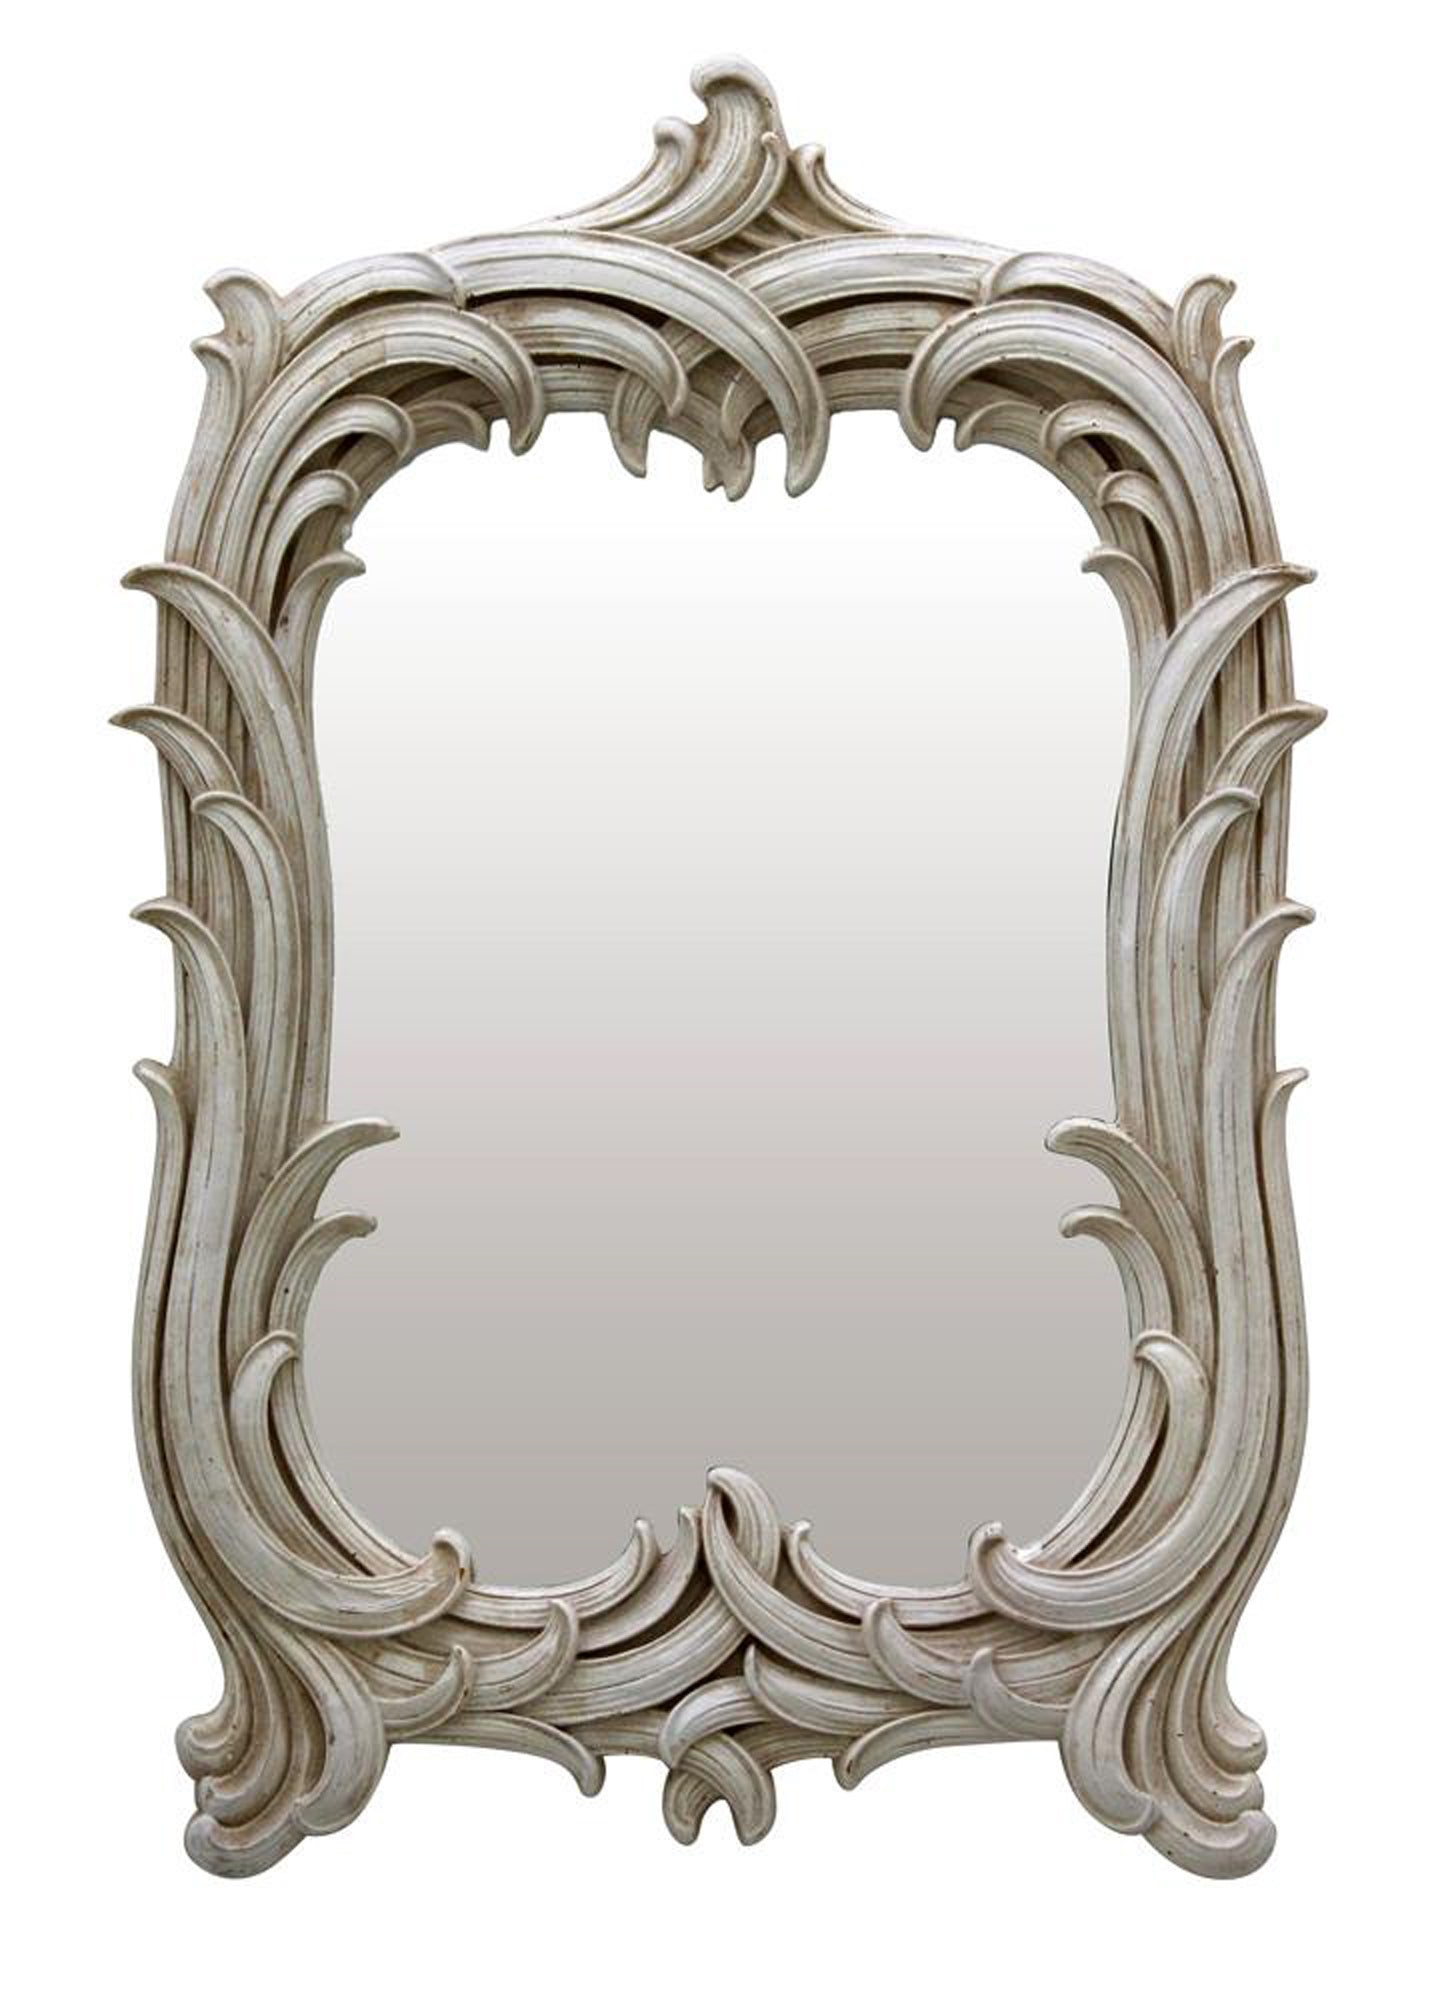 Small Art Nouveau Mirror